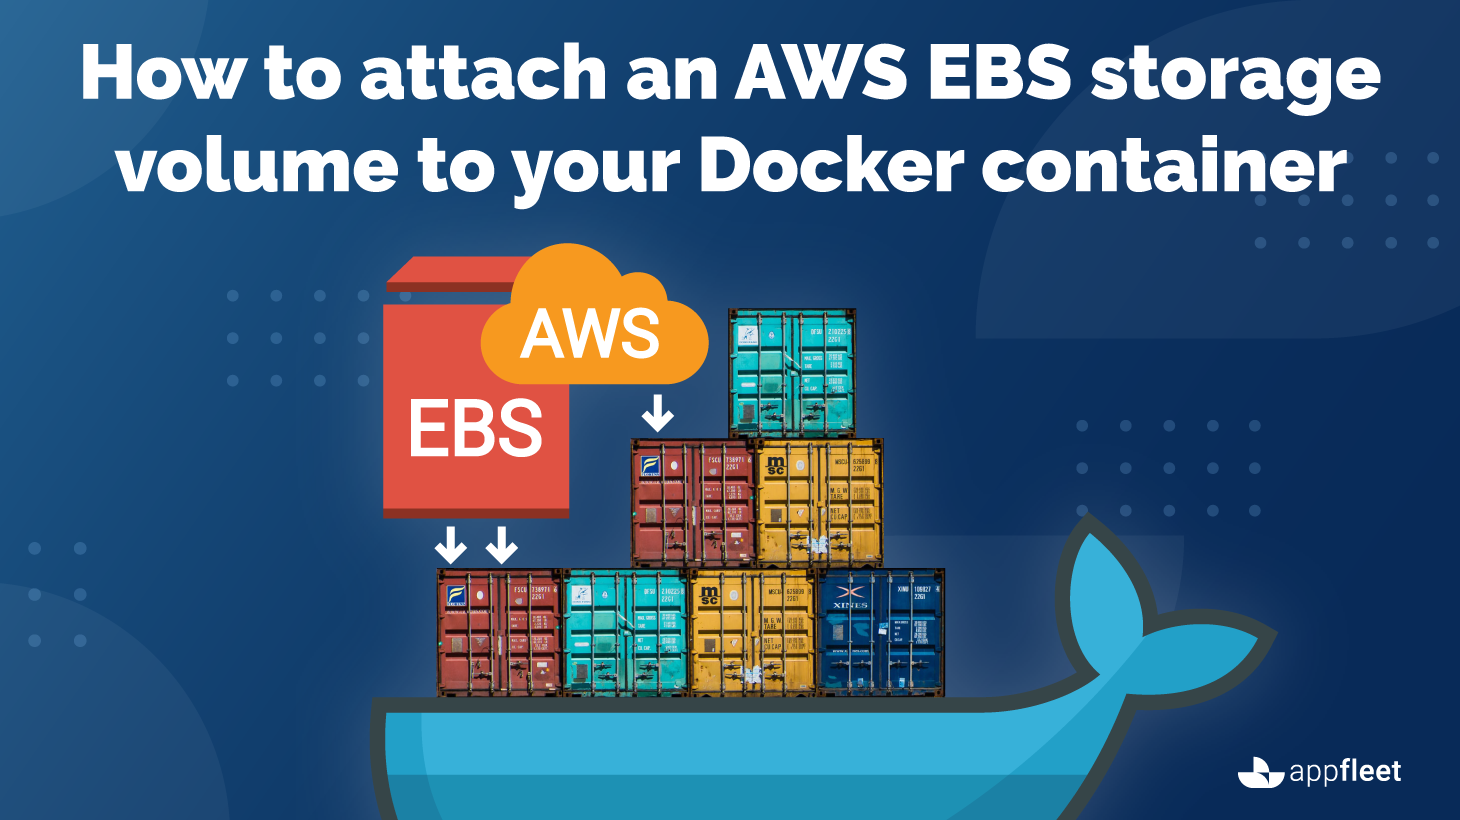 How to attach an AWS EBS storage volume to your Docker container